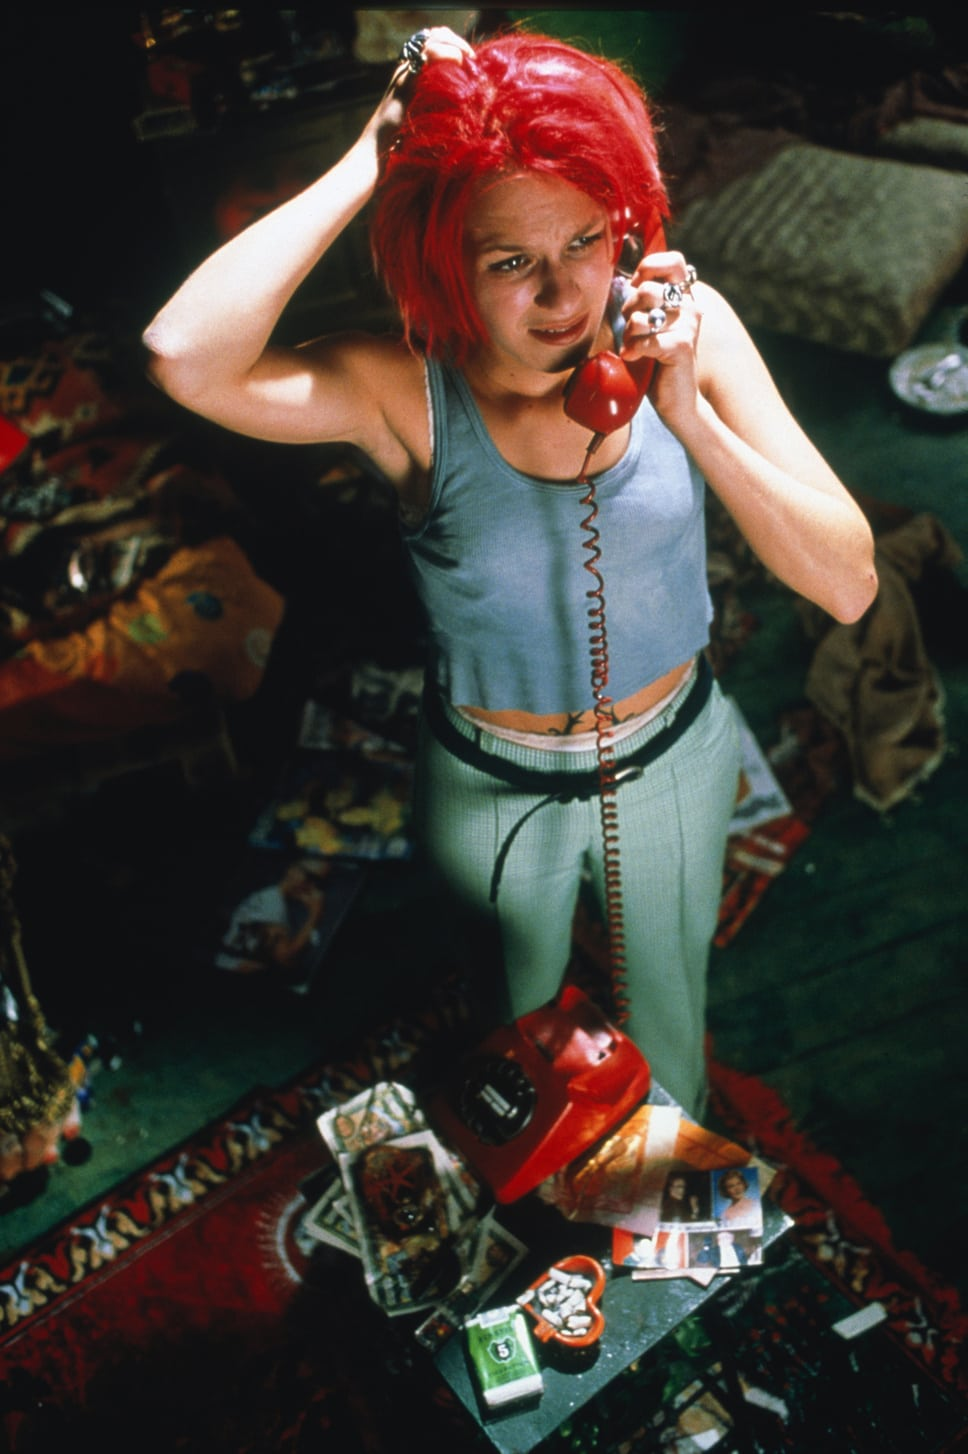 run lola run film review Audience reviews for run lola run lola has twenty minutes to find a way to get 100,000 deutschmarks to her boyfriend across town before he gets whacked problem is, she's broke, but fortunately .